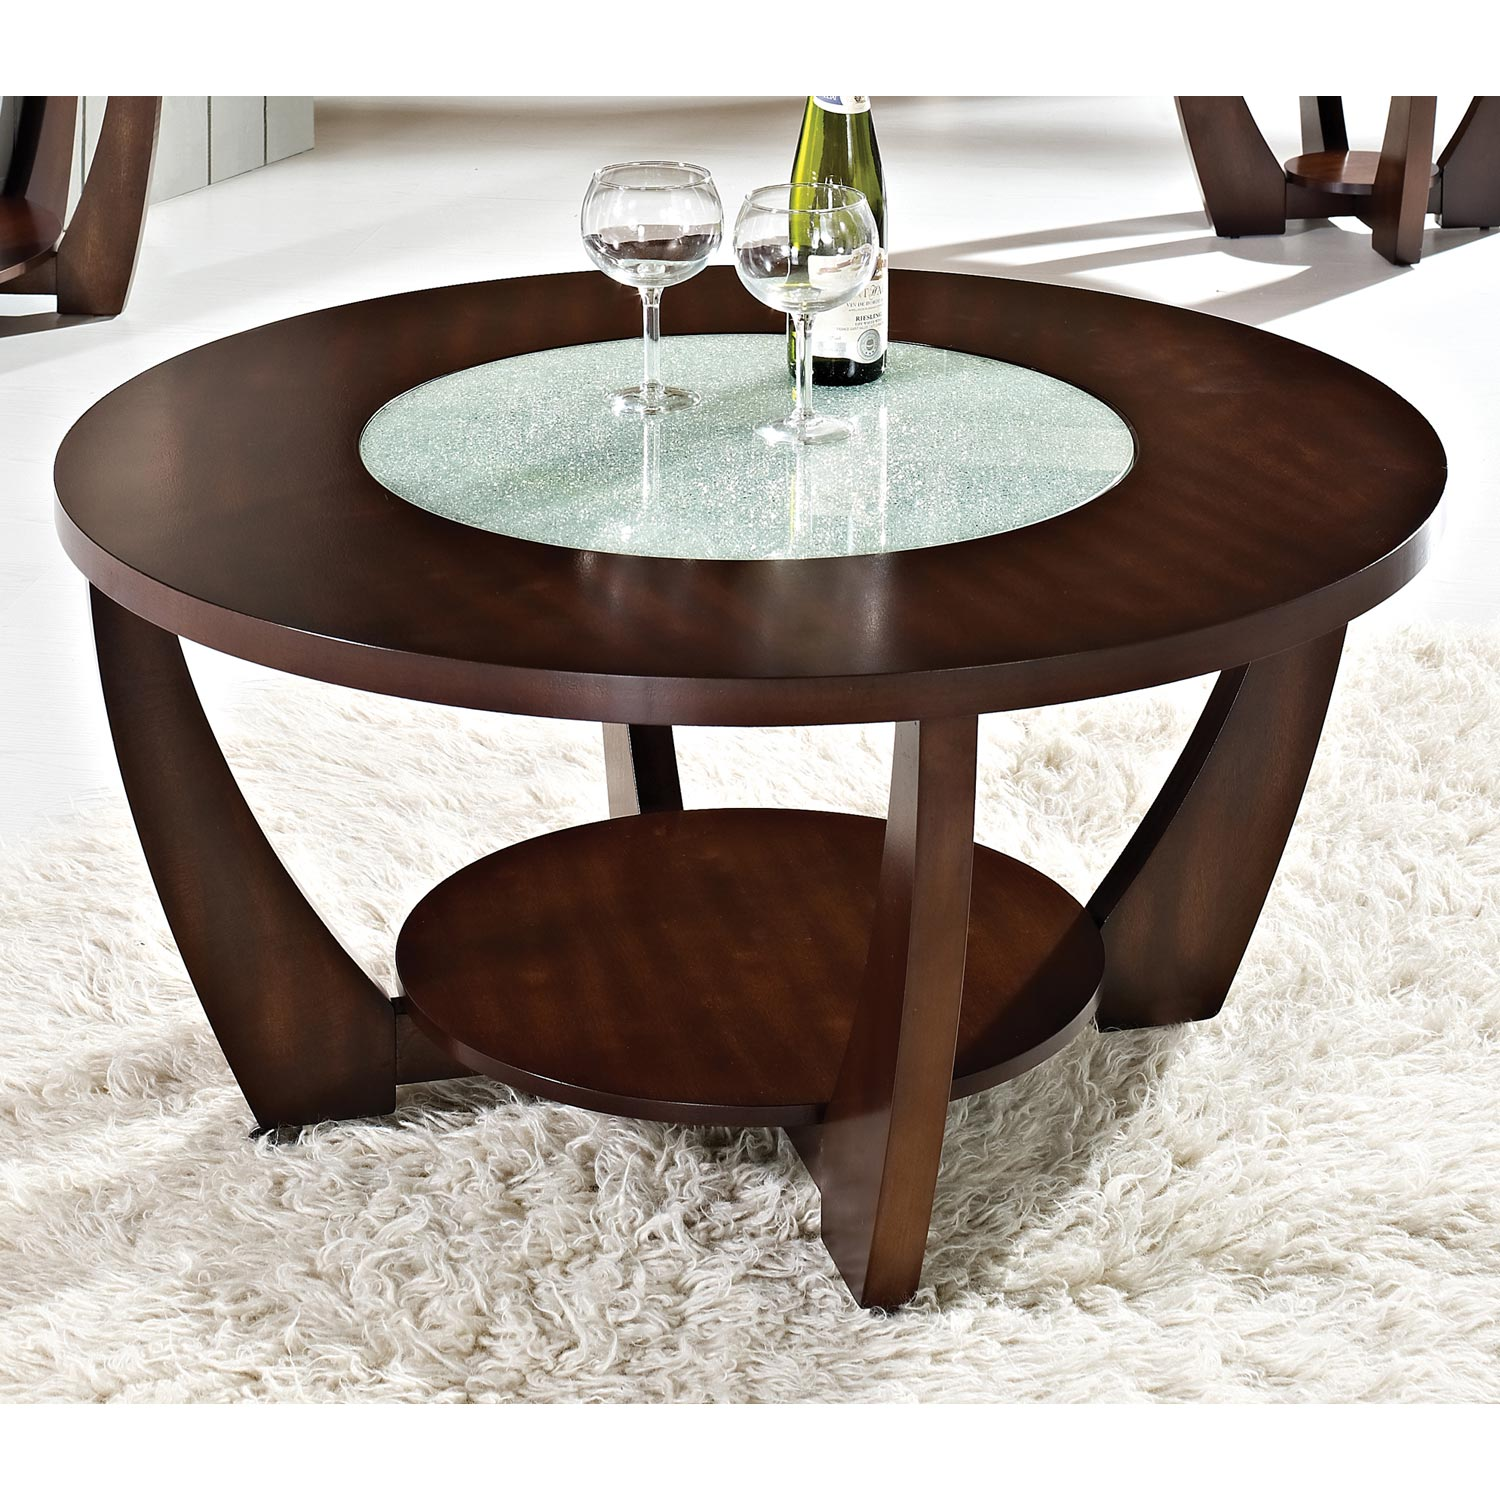 Rafael Round Coffee Table Crackled Glass Dark Cherry Wood Dcg Stores